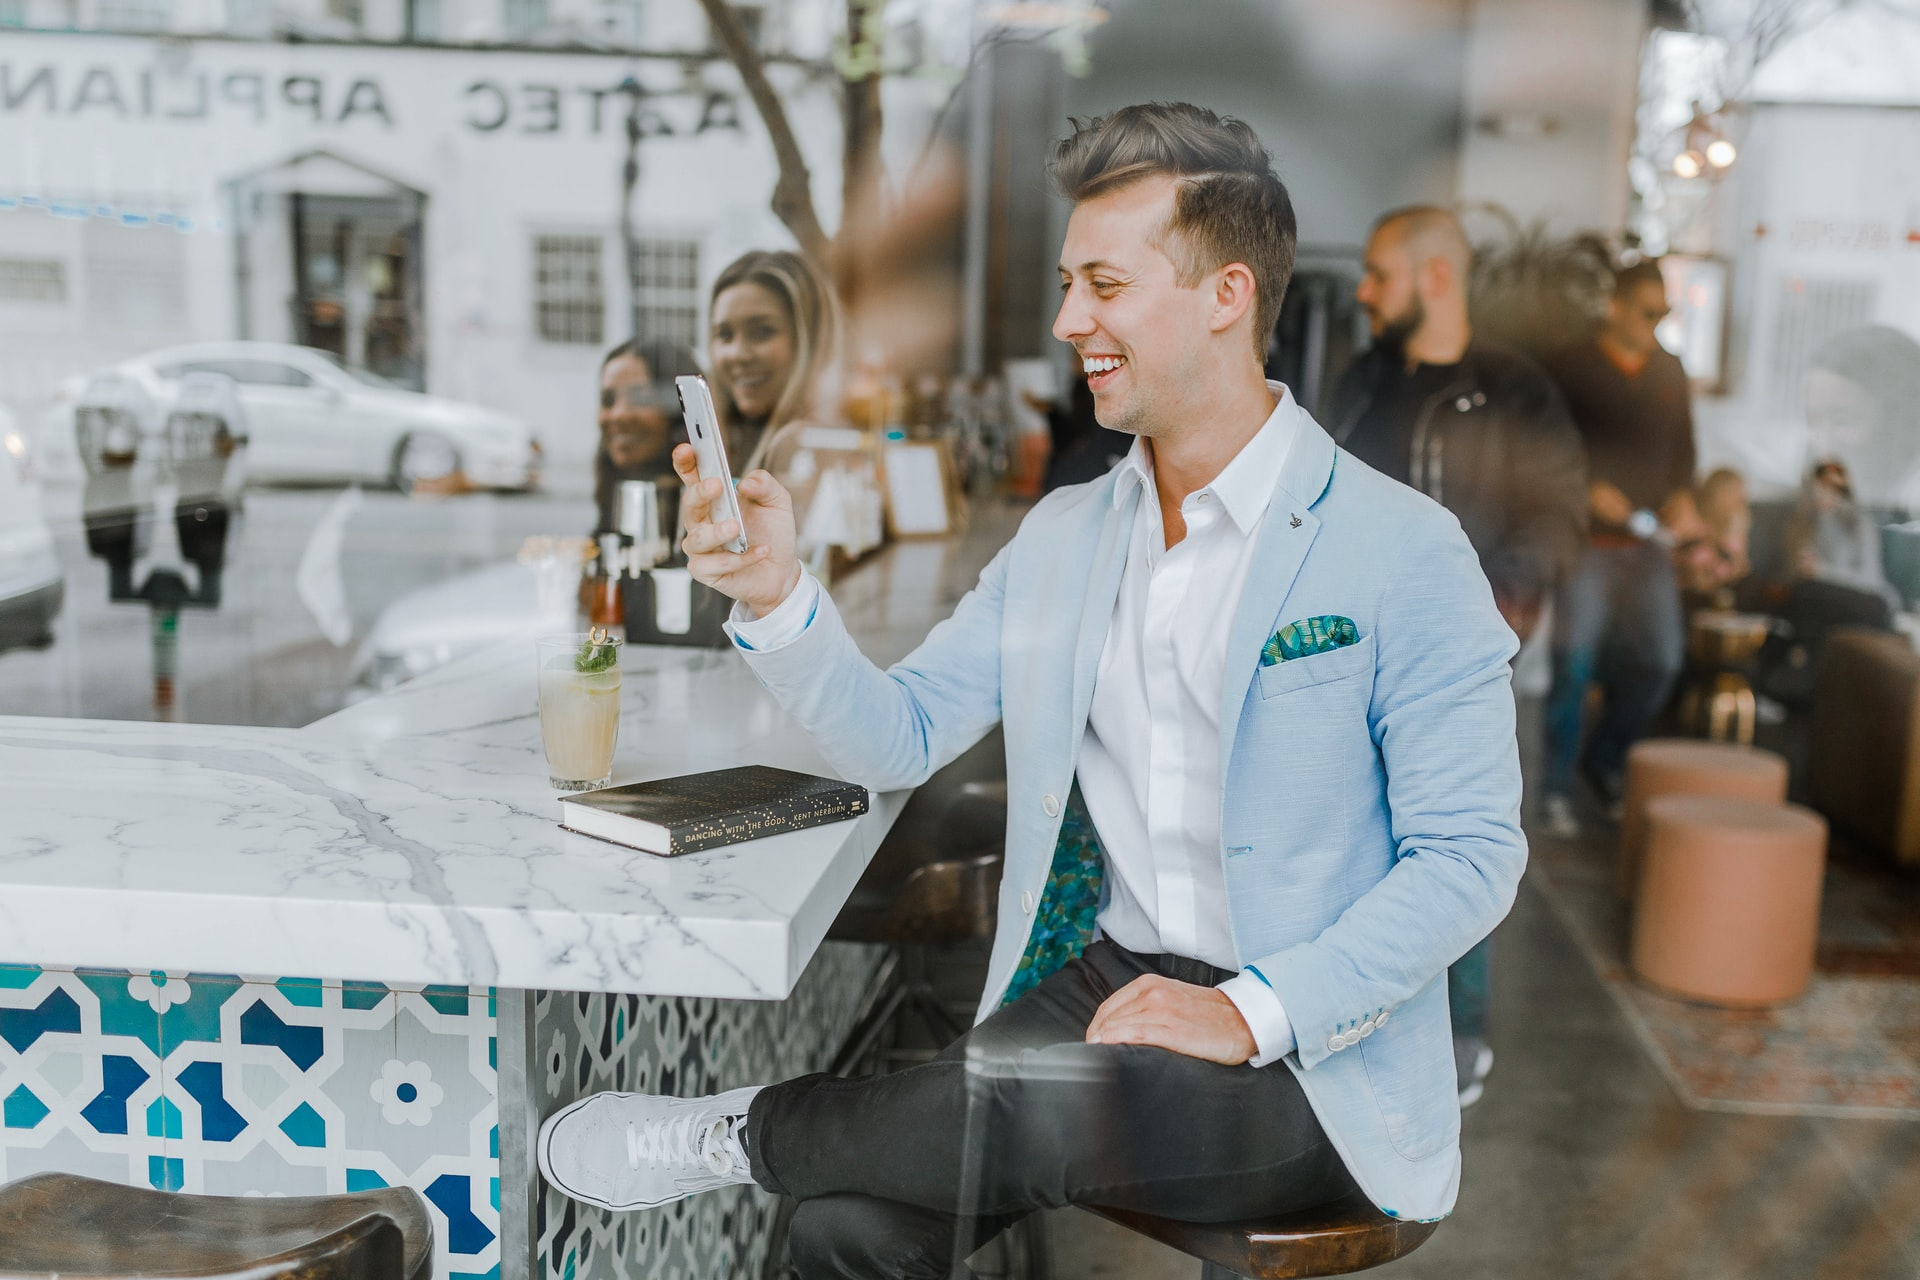 A young man in a blue sport jacket smiling and using his smartphone in a cafe